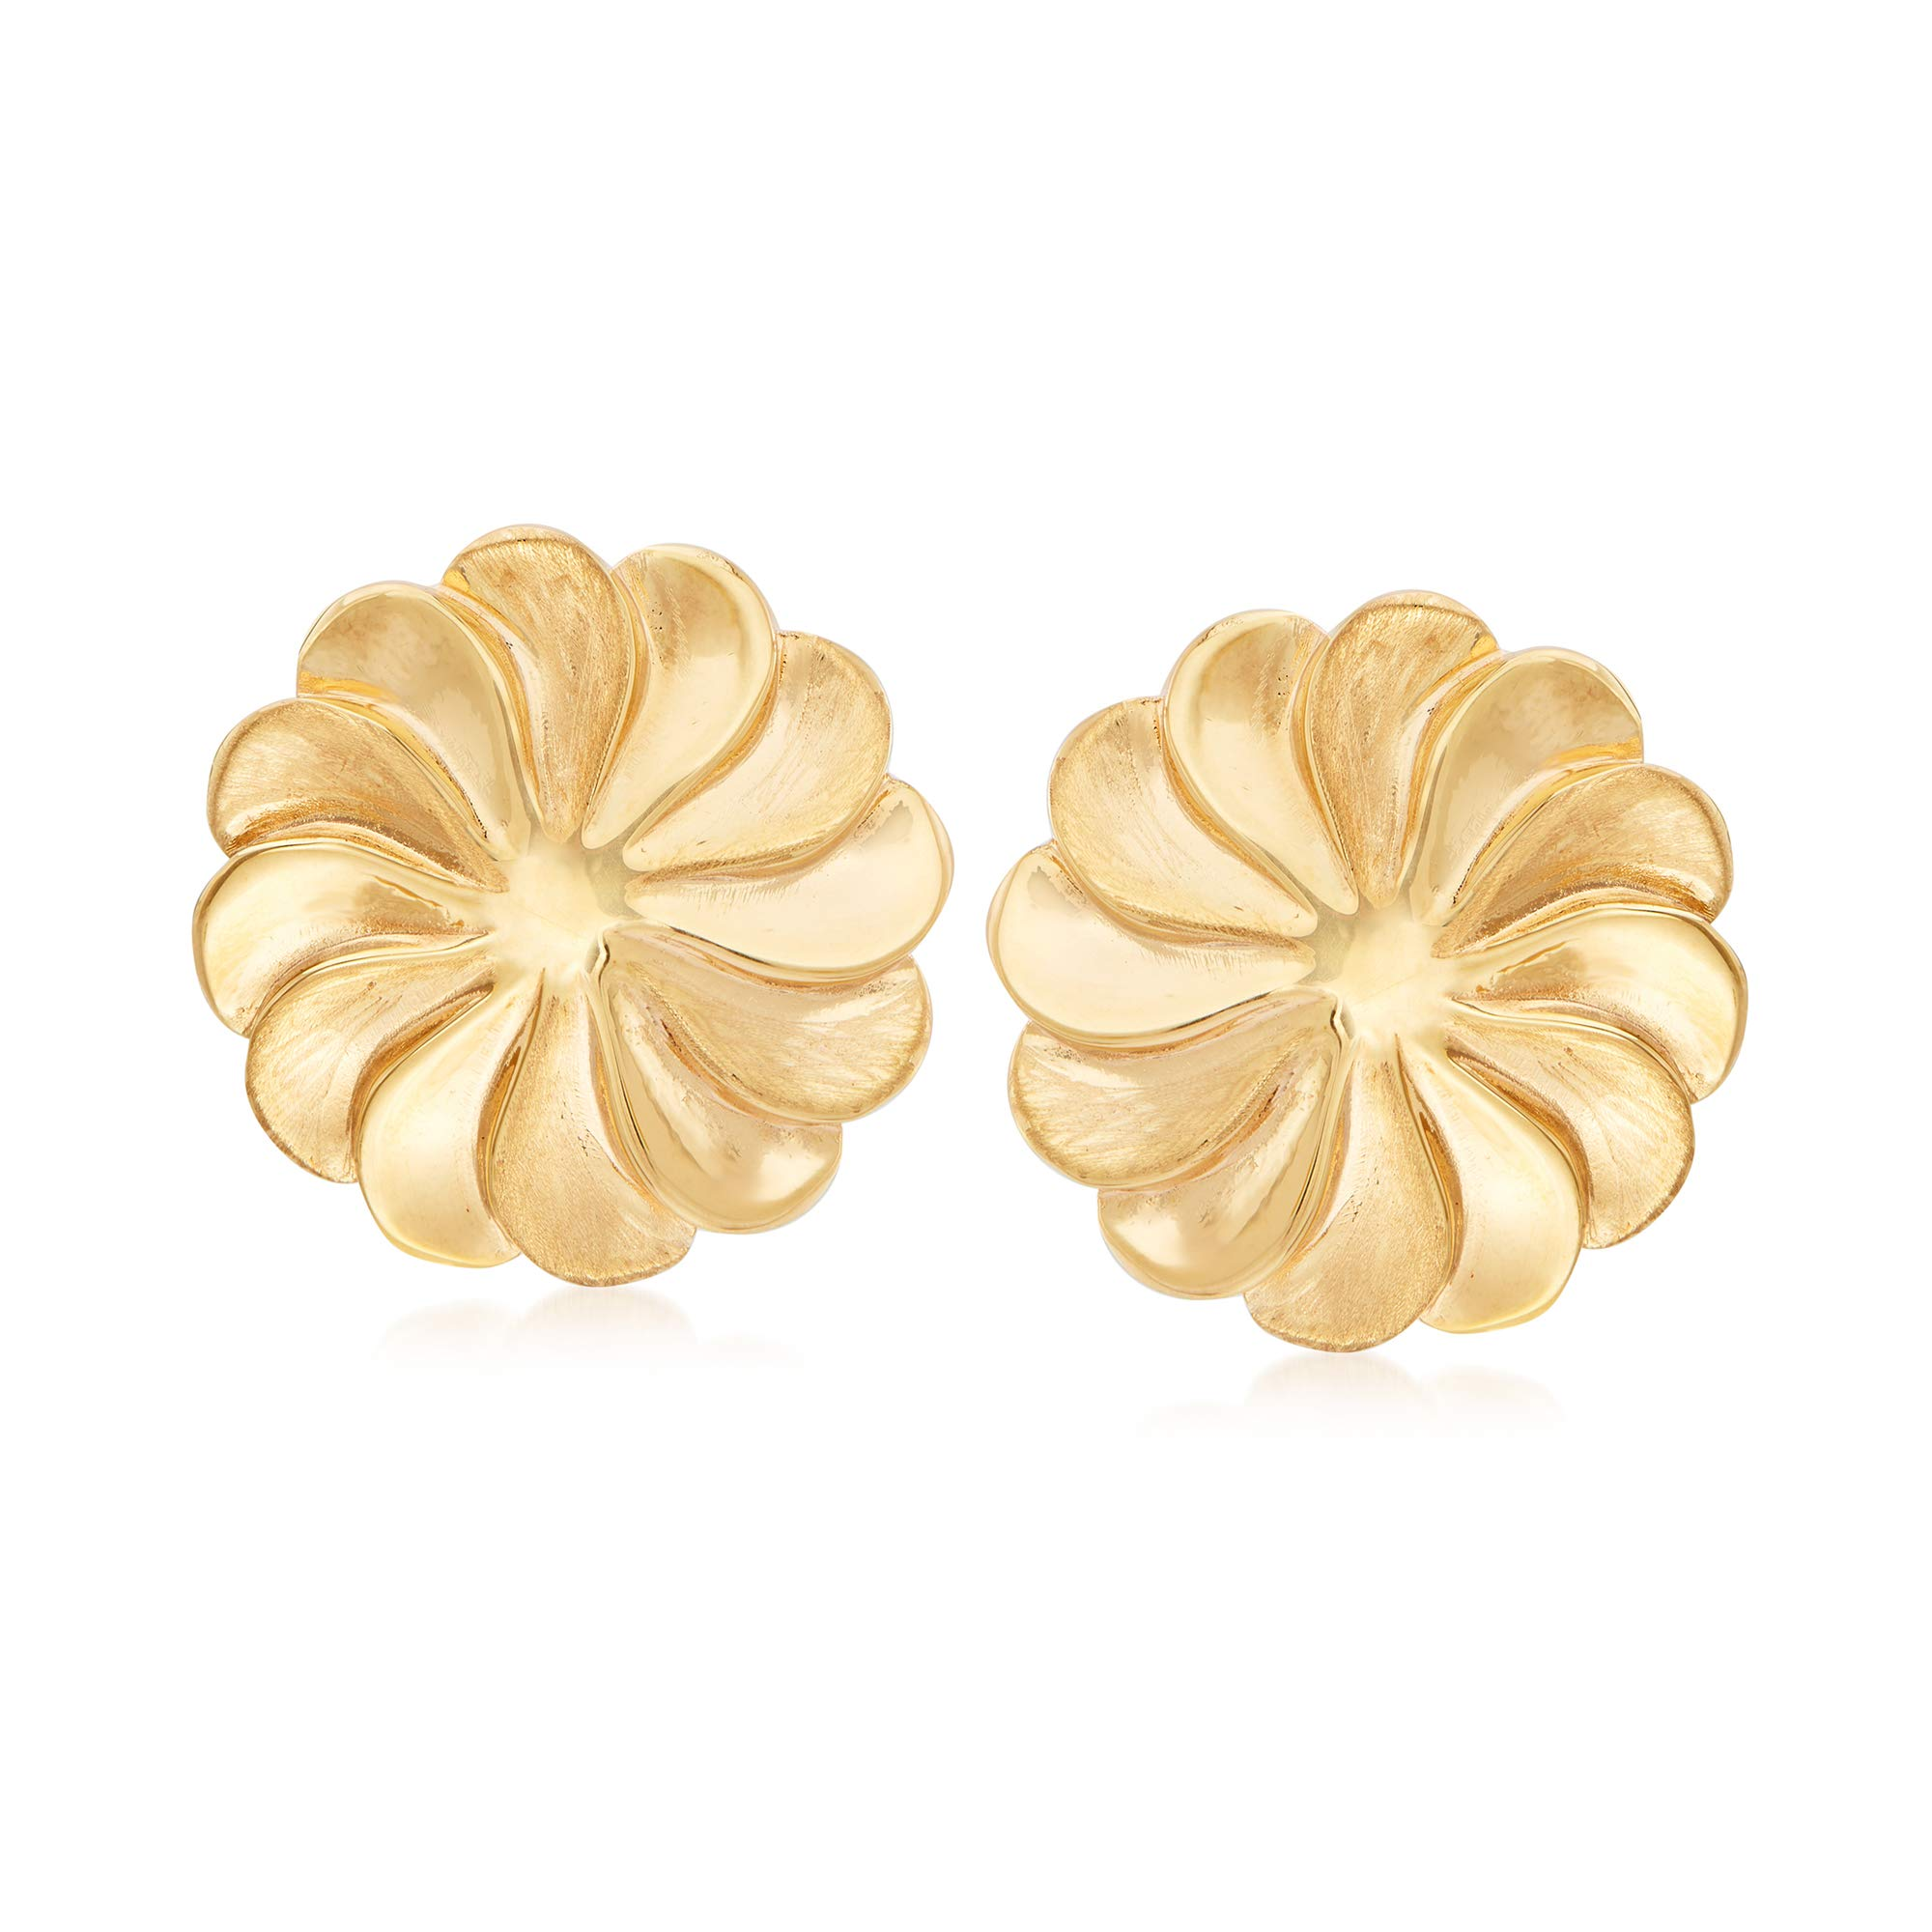 Ross-Simons Italian 18kt Yellow Gold Pinwheel Clip-On Earrings